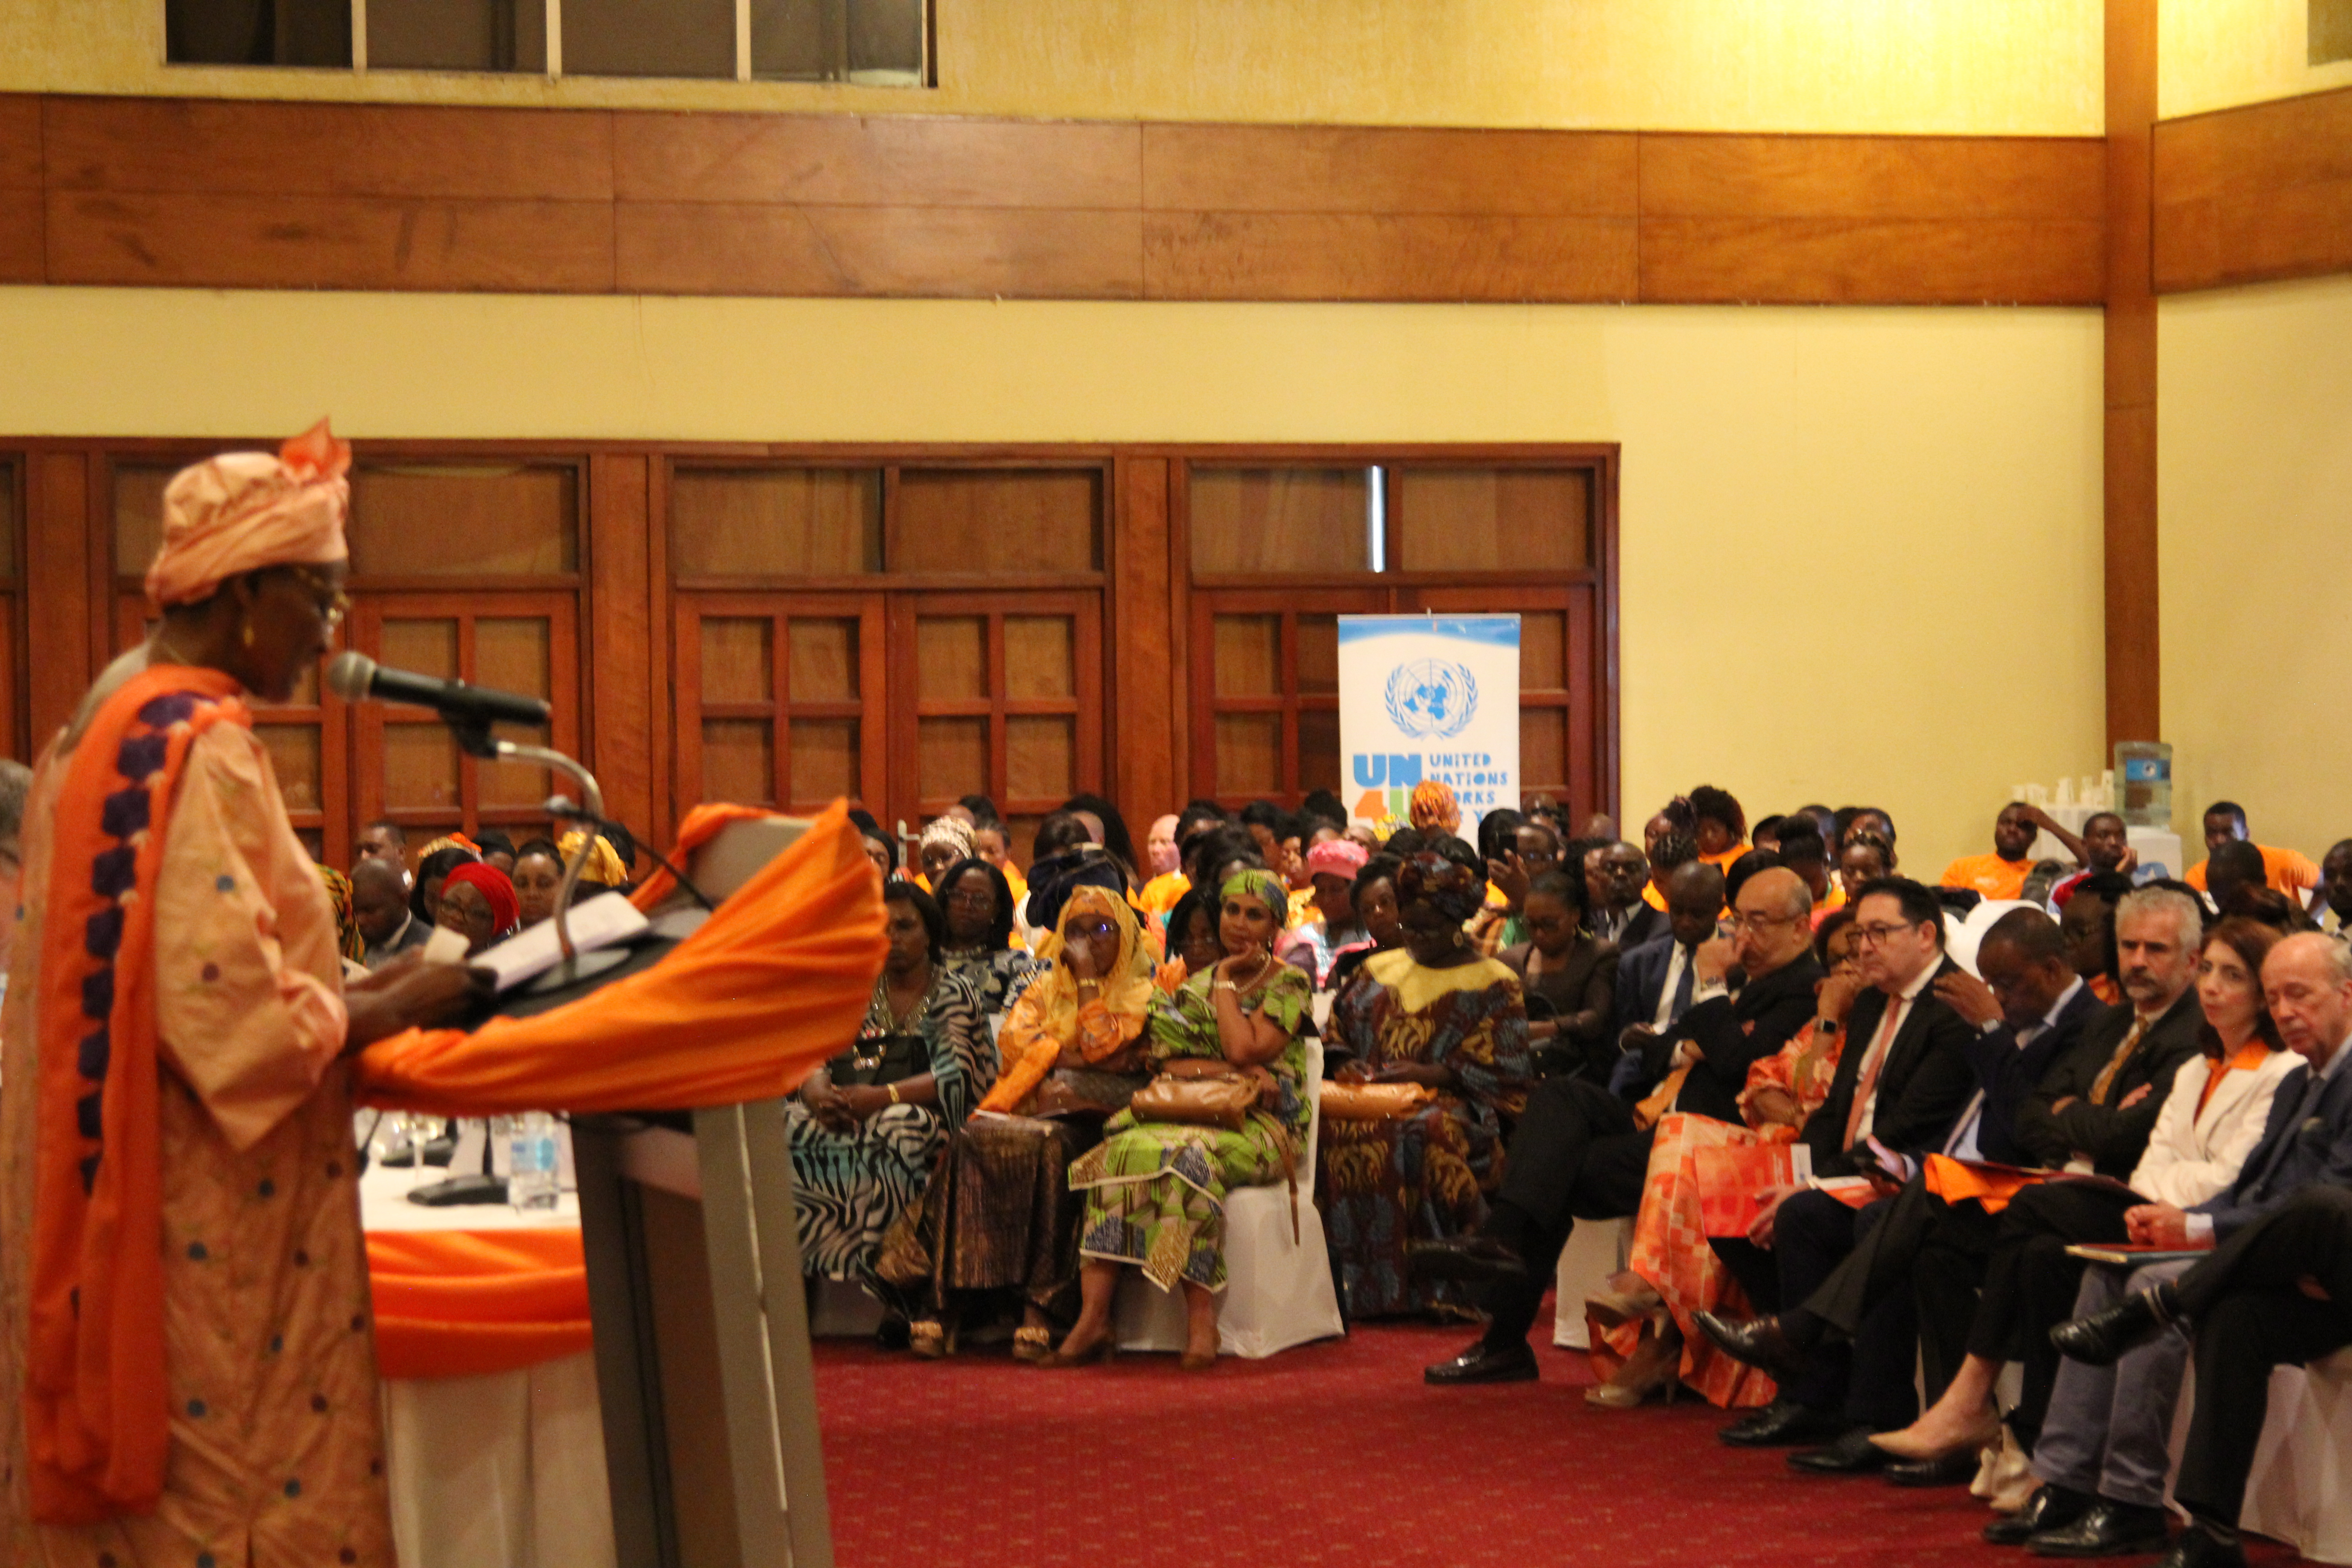 Minister Abena Ondoa Marie-Therese, Minister of Women Empowerment and the Family officially launcing the 16 days campaign in Cameroon. Photo credit, Teclaire Same/UN Women